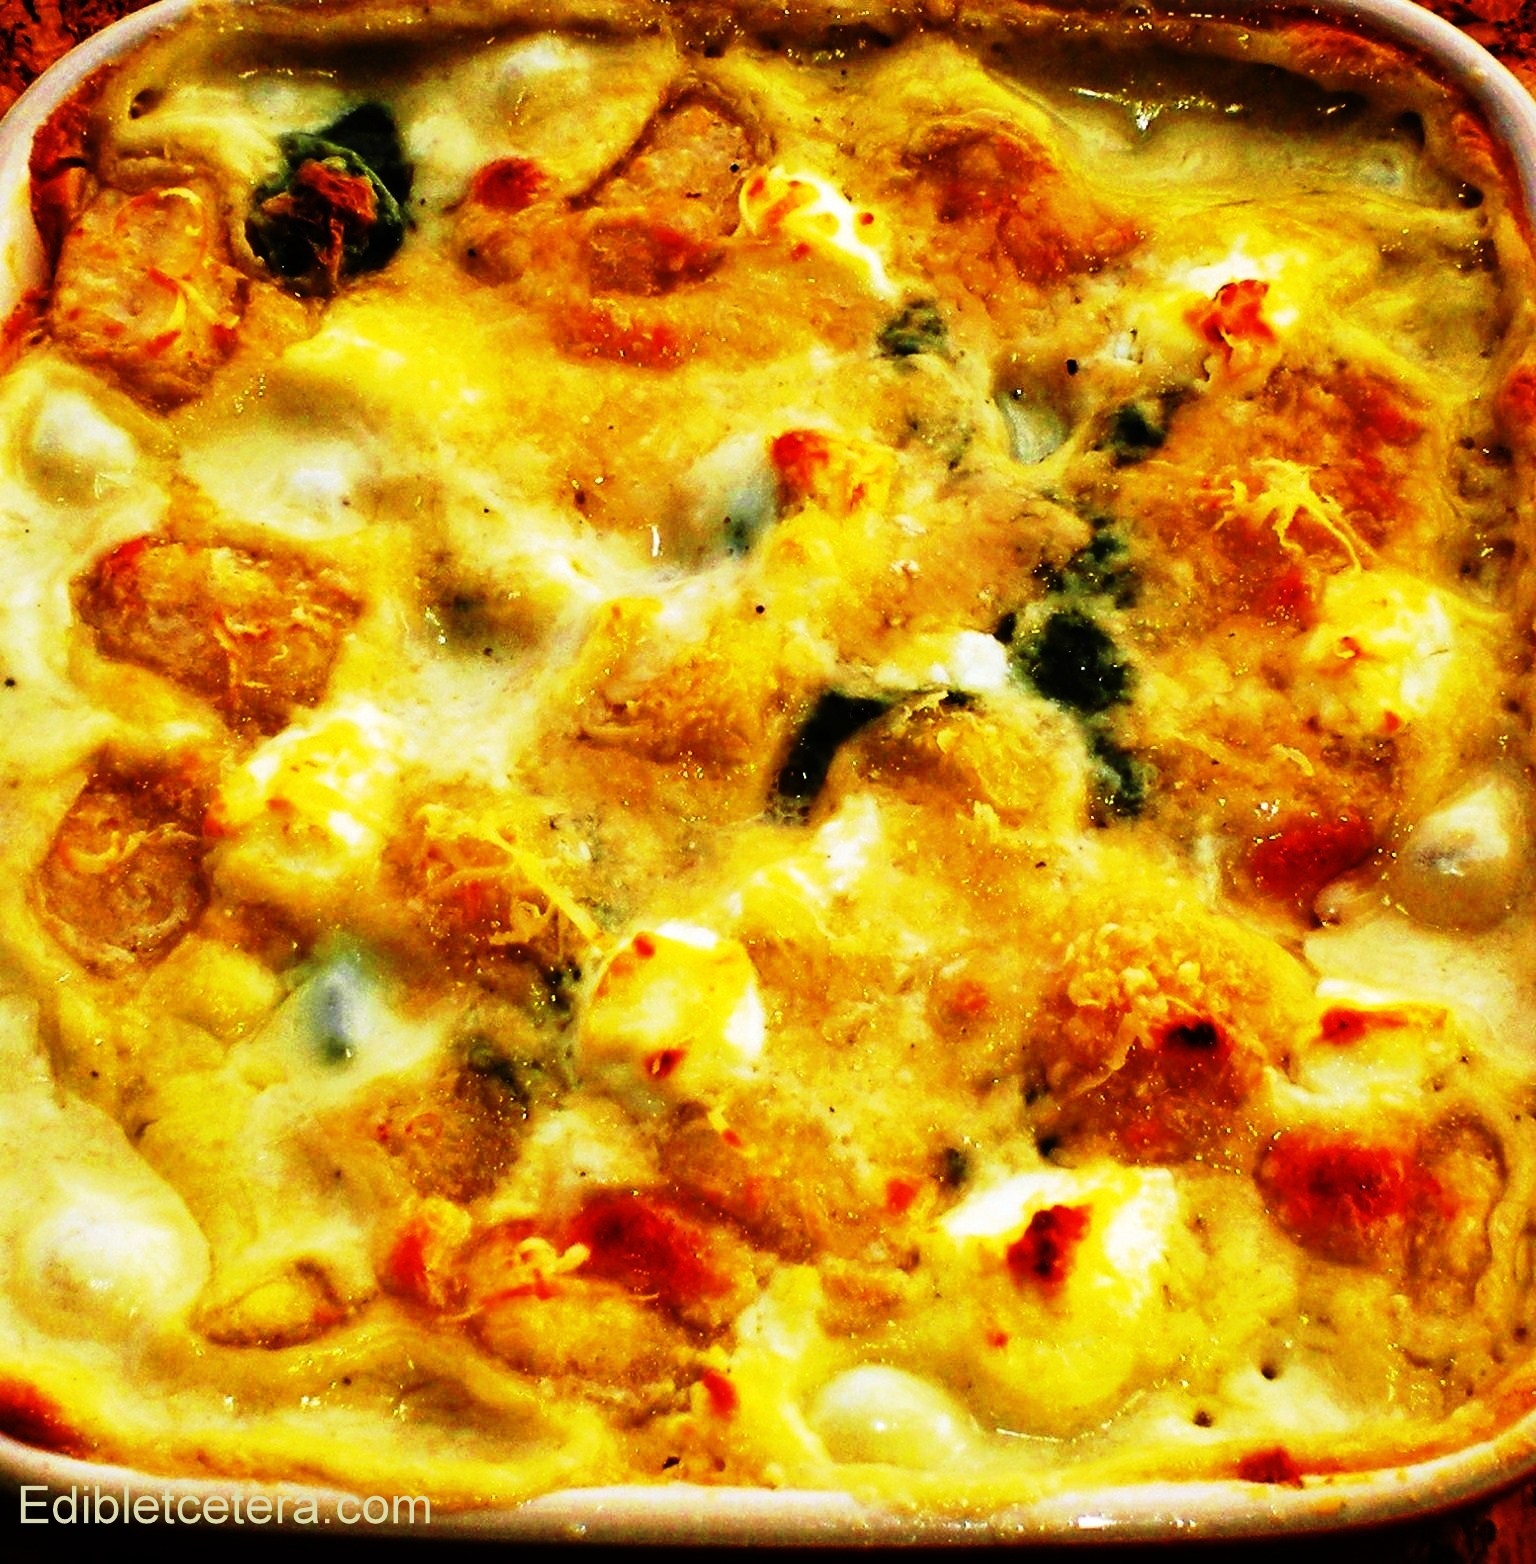 Recipe: Baked Gnocchi with Spinach & Cheese | Edibletcetera – Fast ...